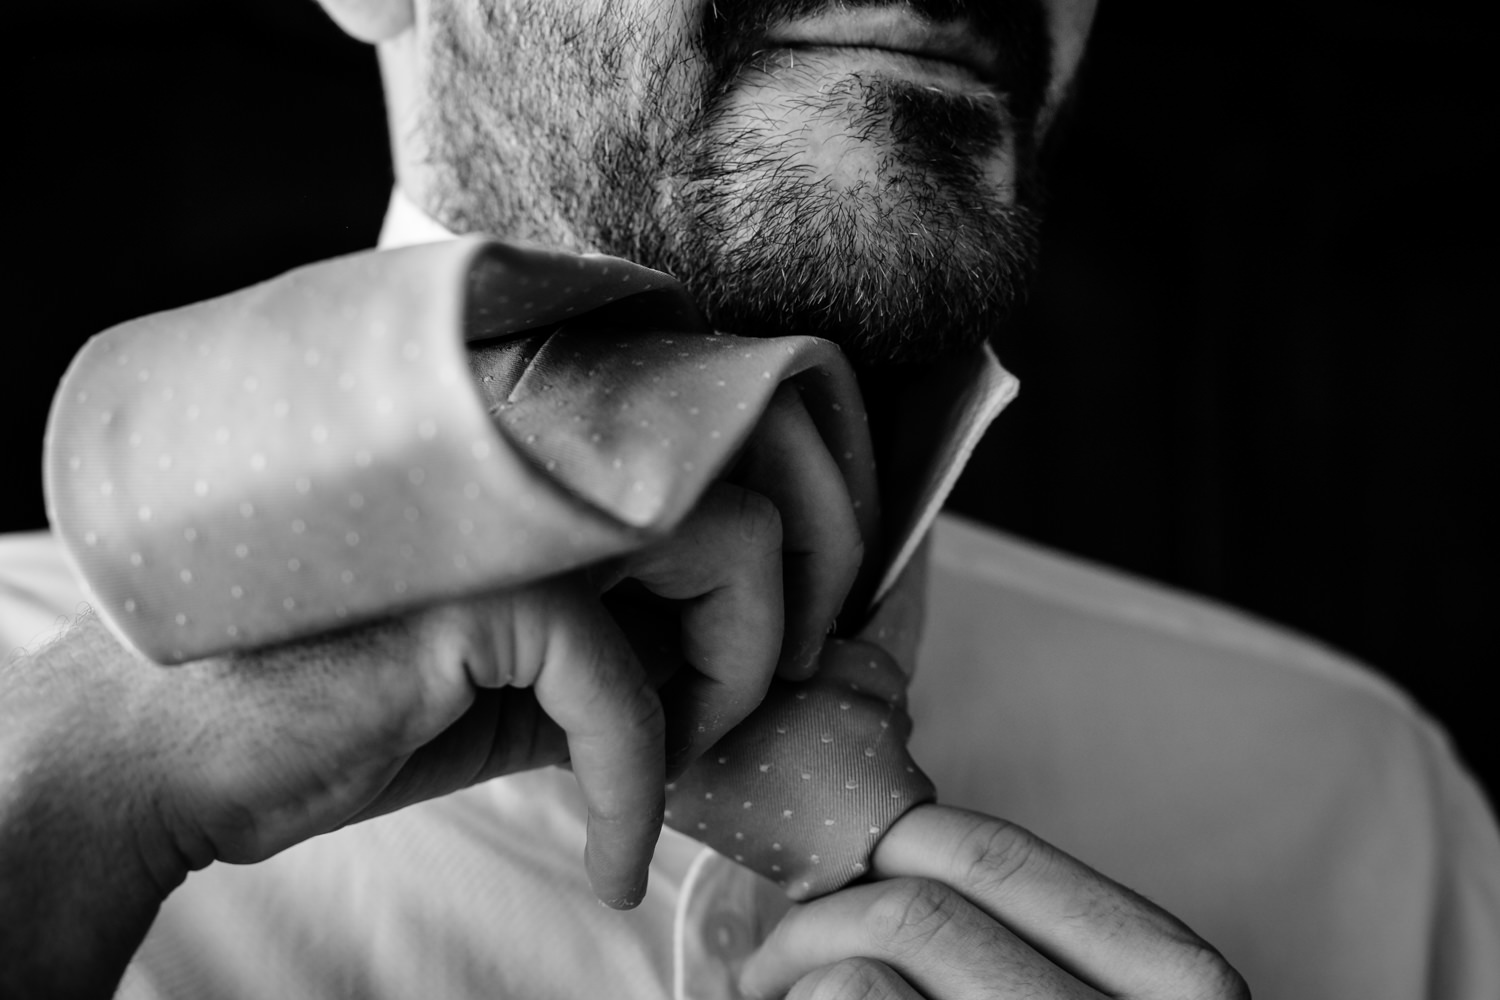 Groom knotting his tie.